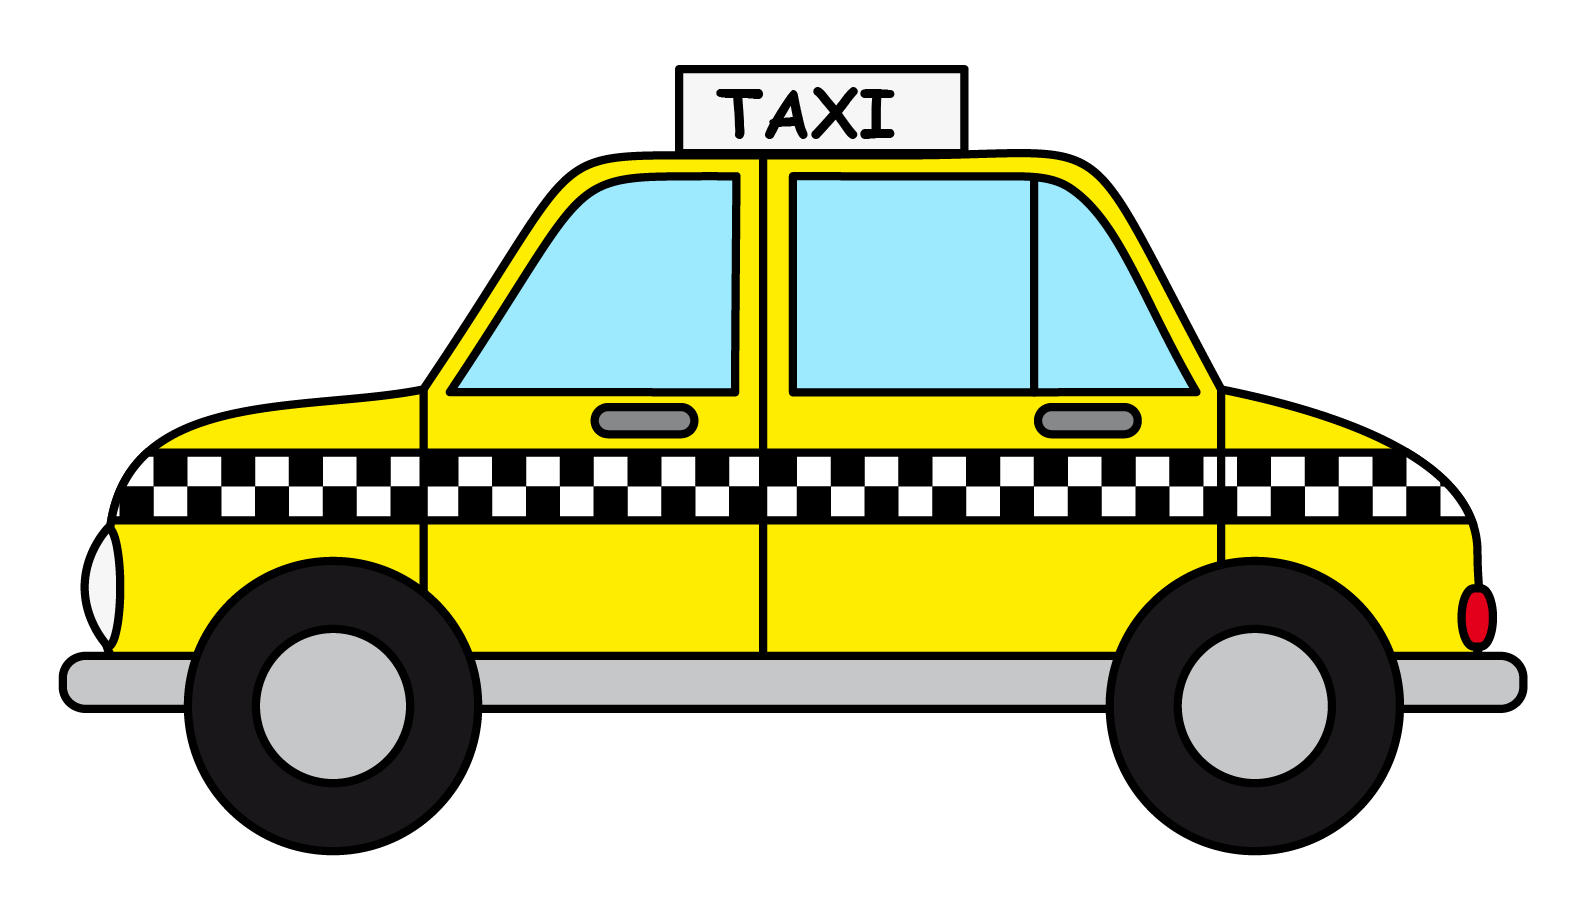 Toy clipart taxi #3